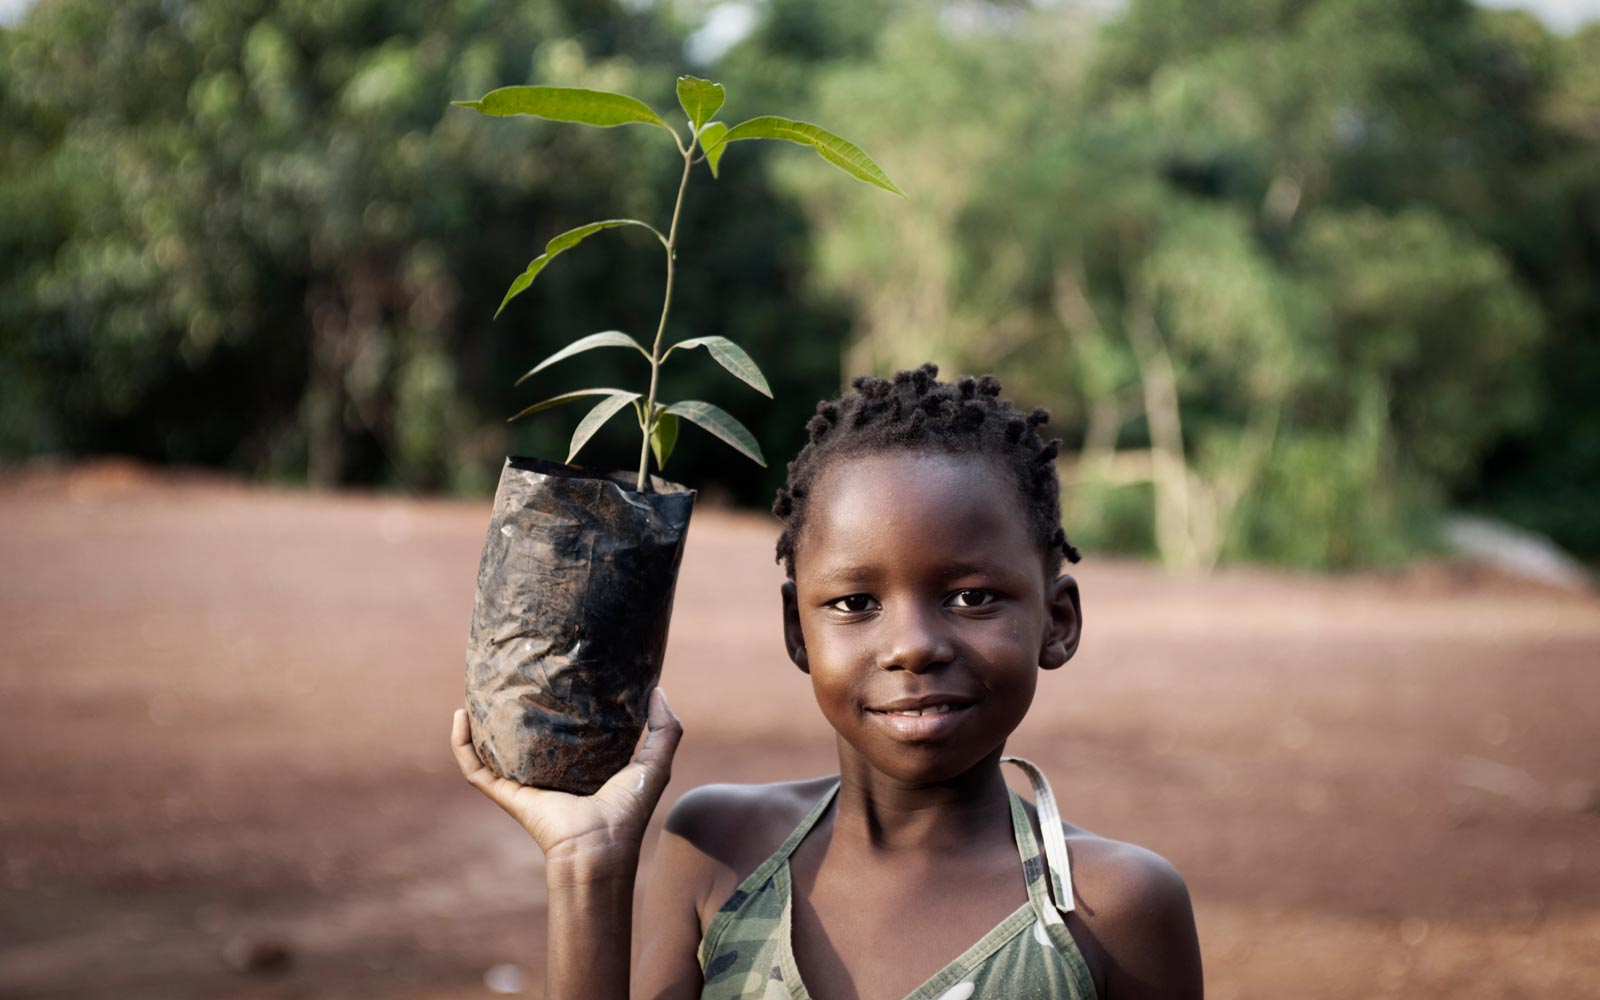 African child in a rural African setting, holding a bagged plant ready for planting.